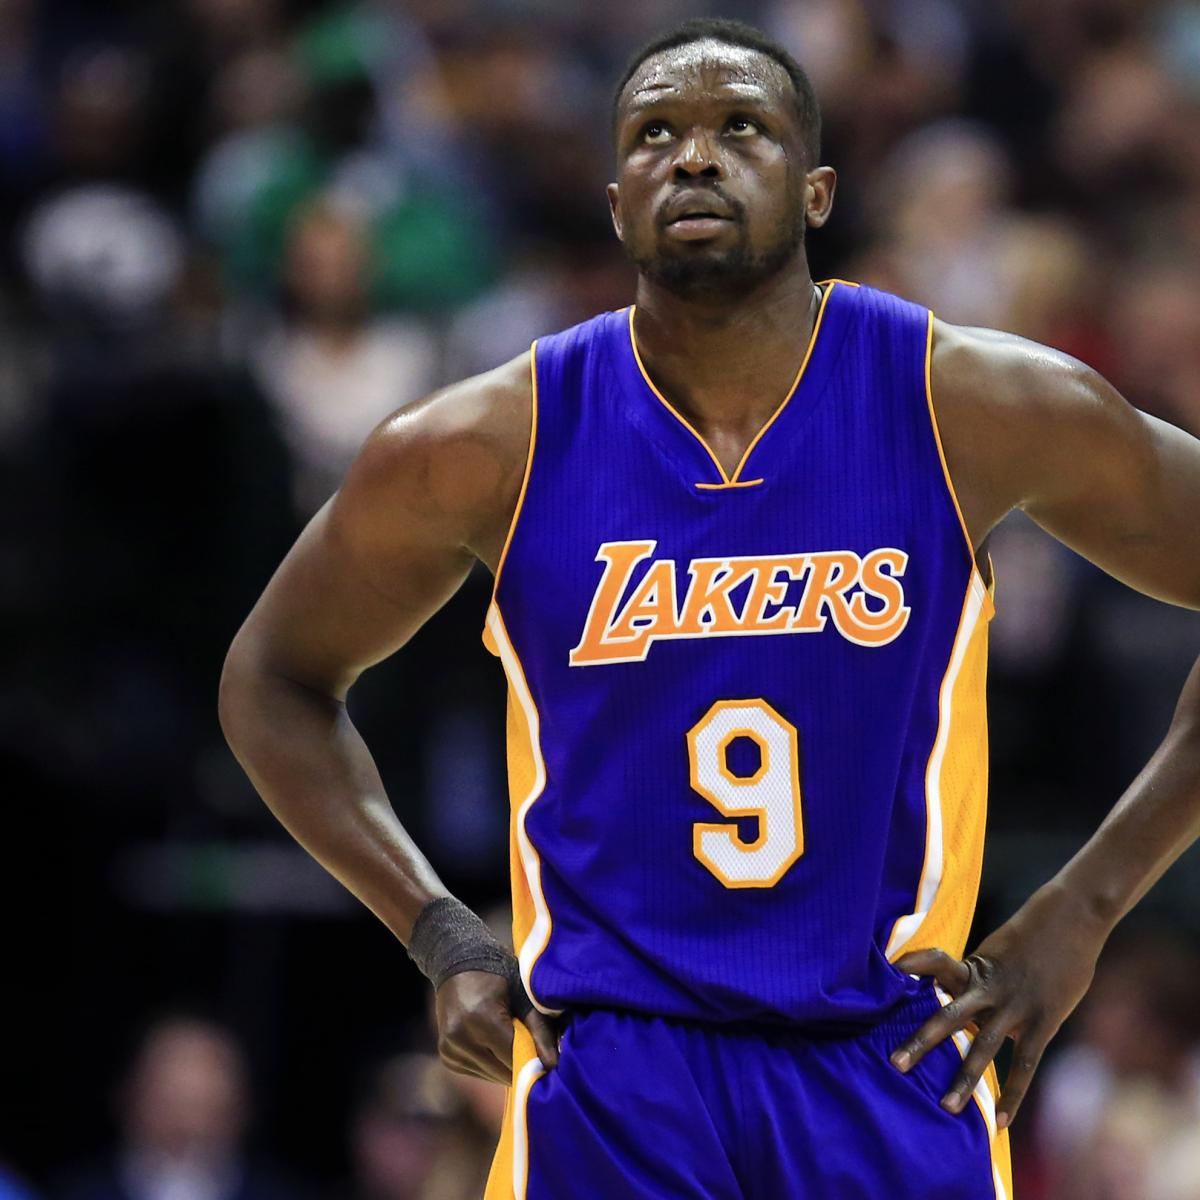 Report: Luol Deng, Timberwolves Agree to 1-Year, $2.4 Million Contract